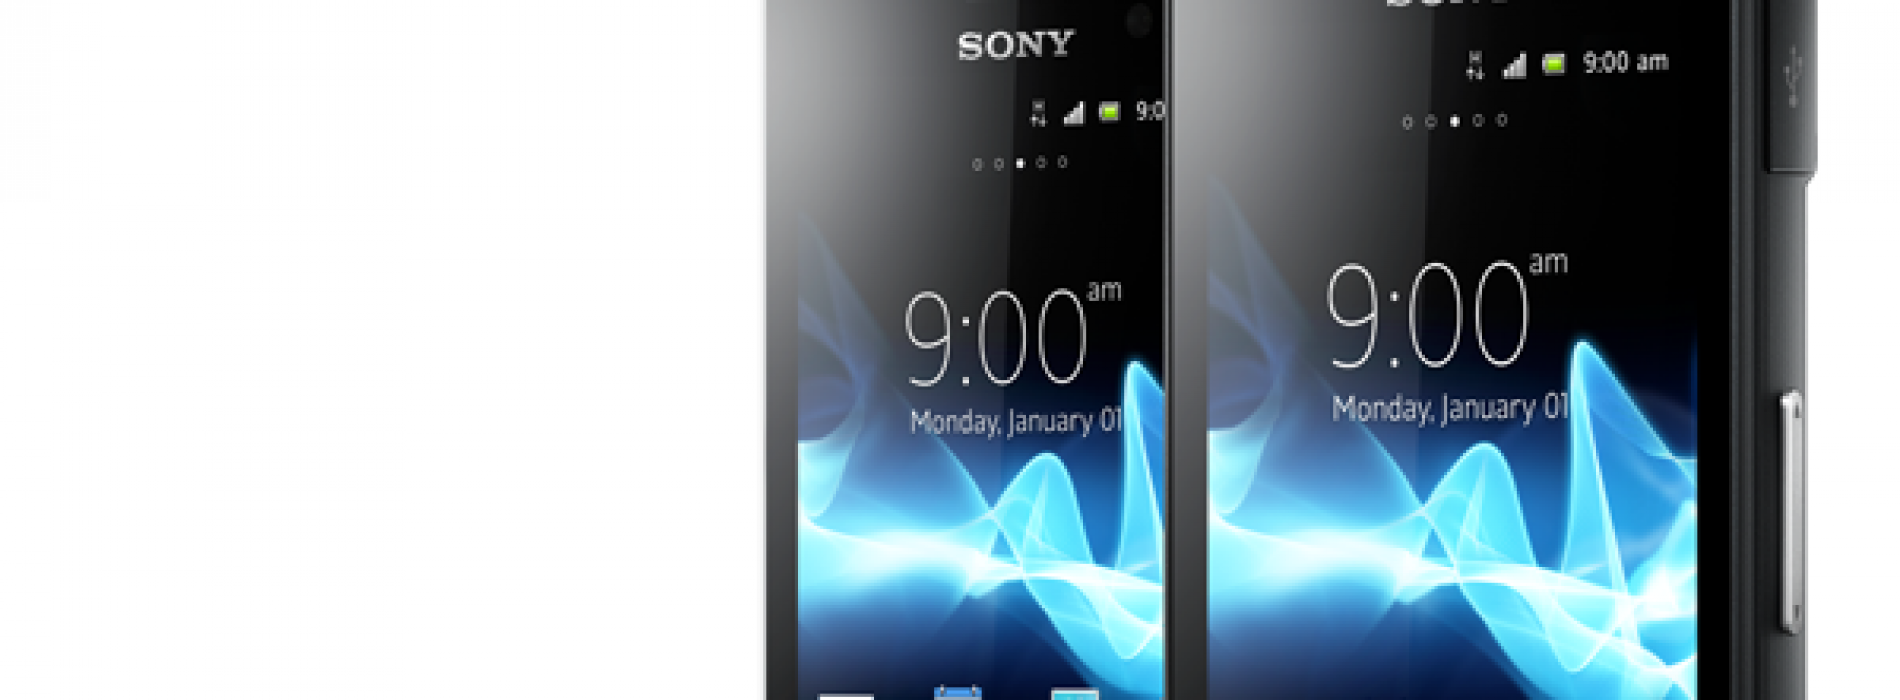 Sony announces sleek, durable and water resistant Xperia go, Xperia acro S